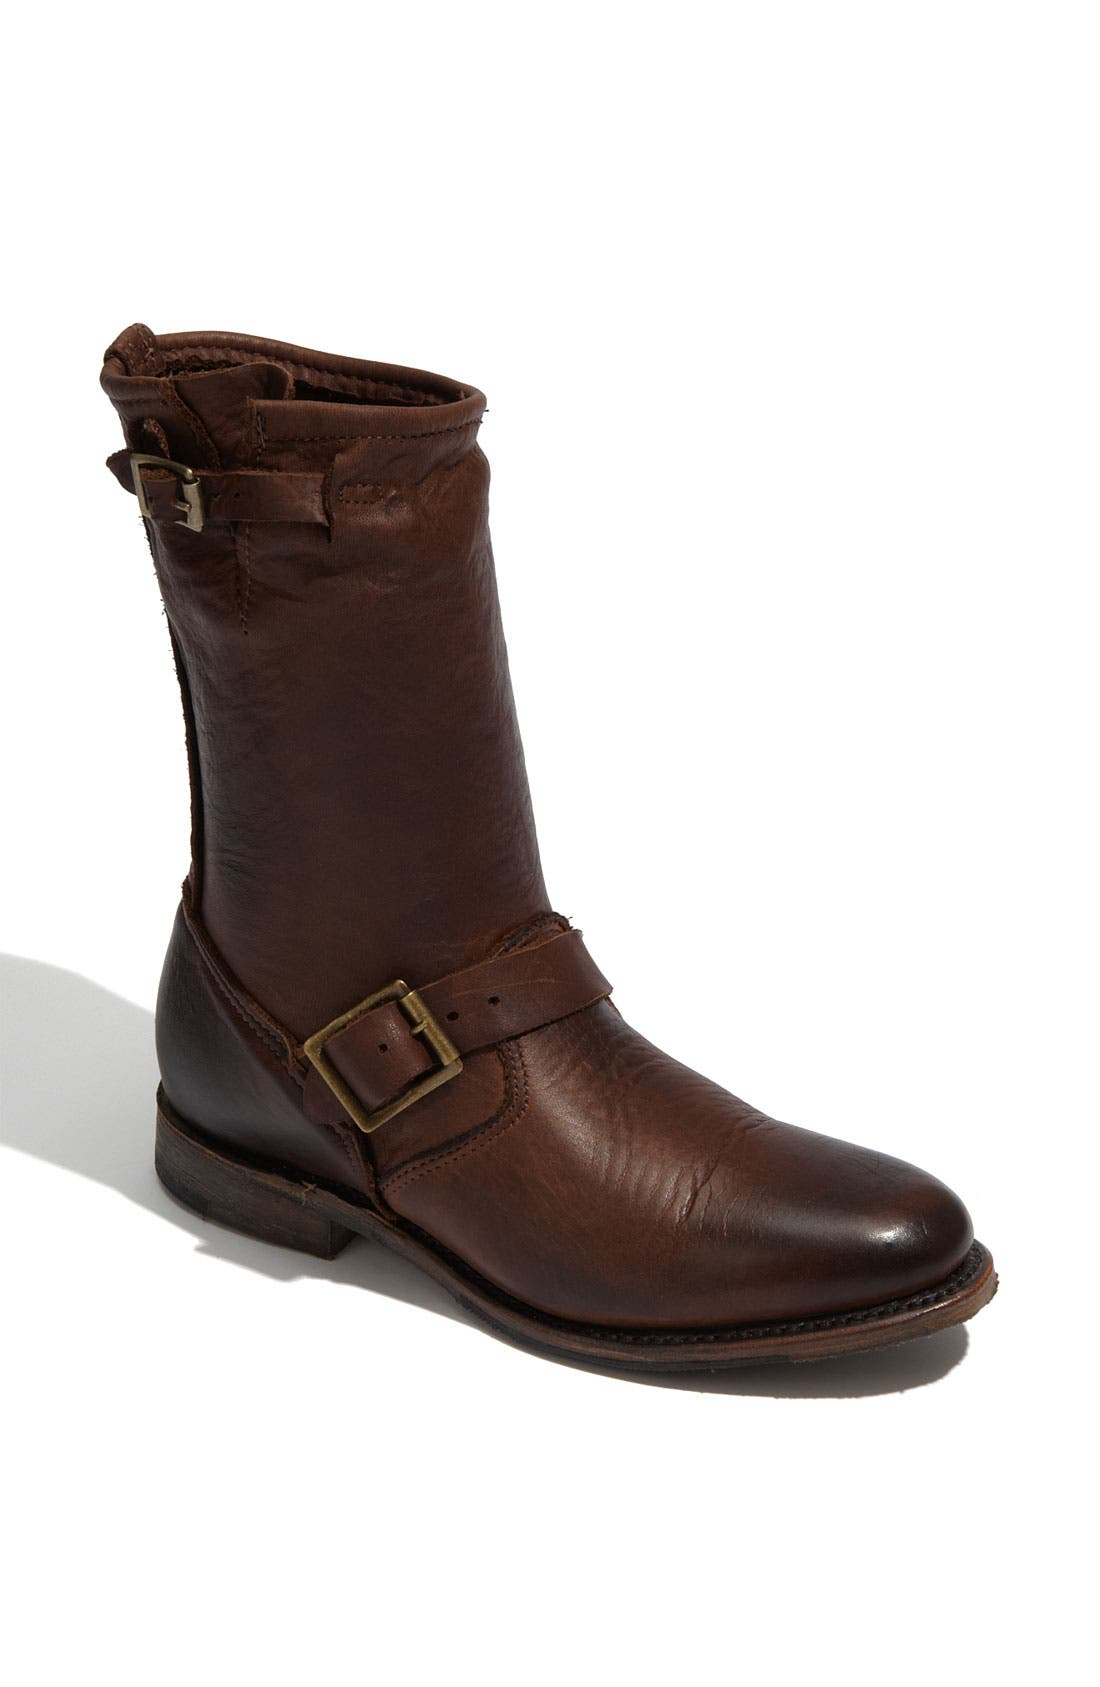 Alternate Image 1 Selected - Vintage Shoe Company 'Veronica' Boot